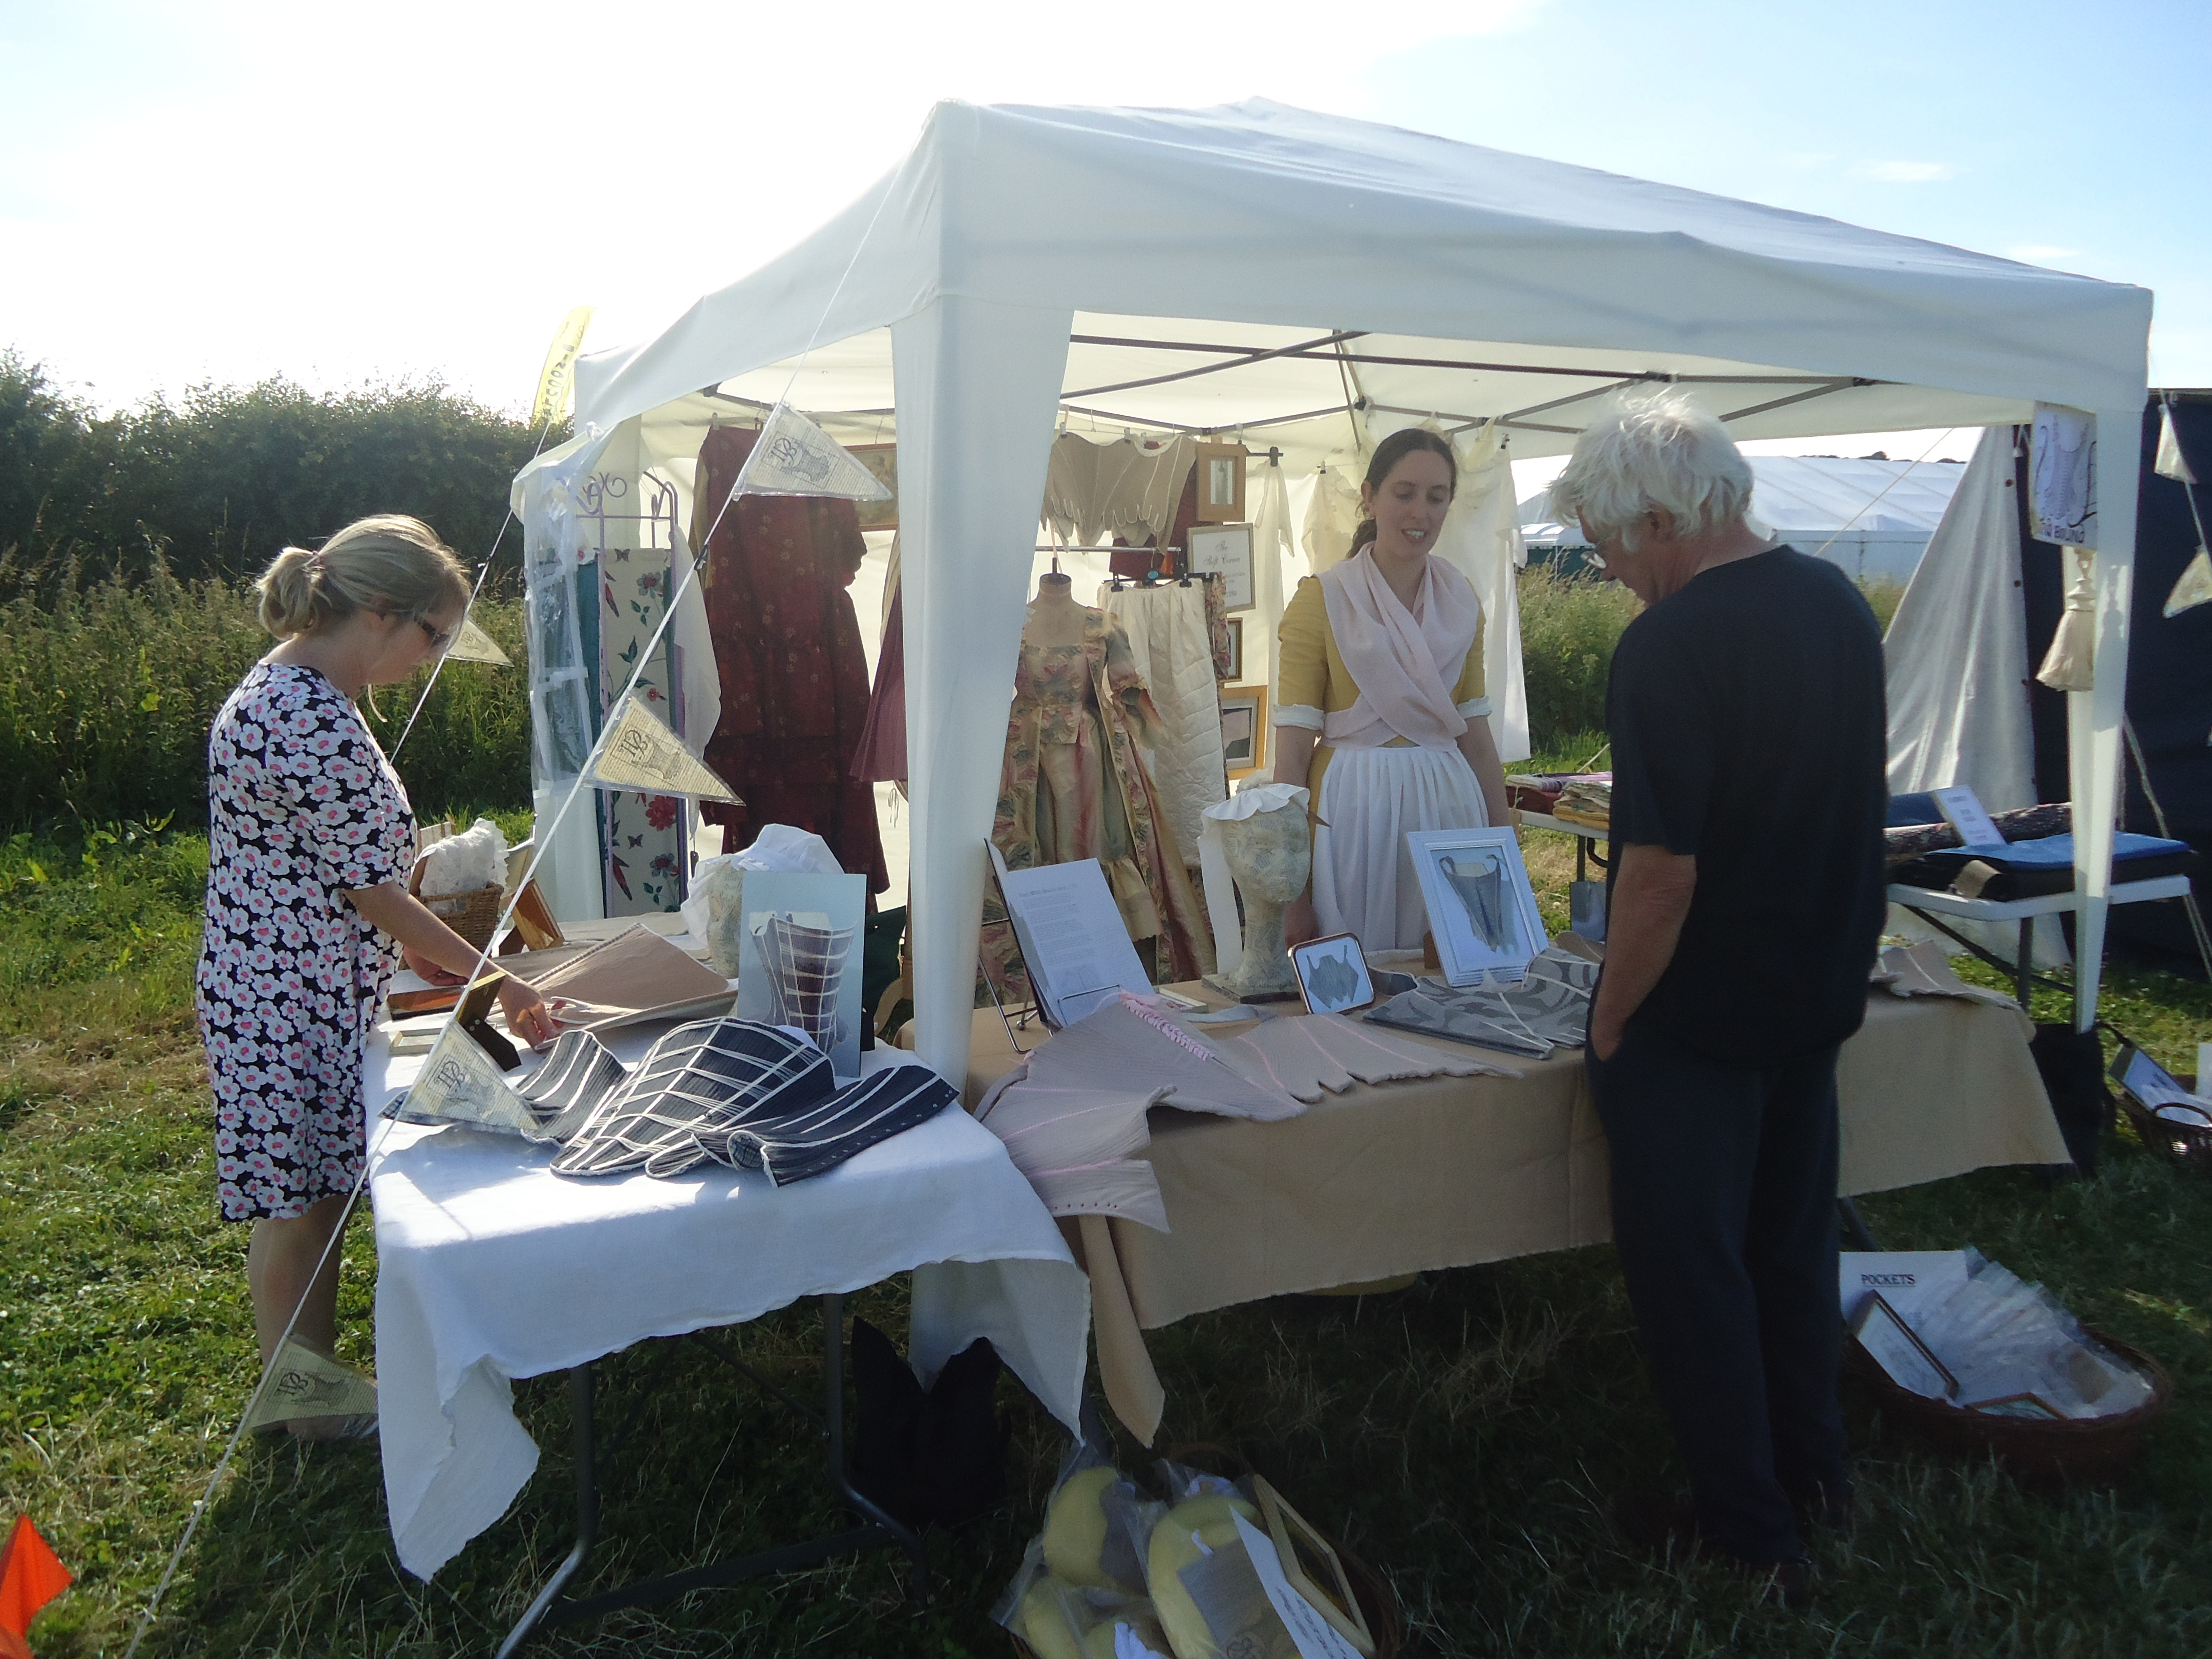 handbound costumes at chalke valley history festival, CVHF Georgian exhibition,  what the georgians wore, 18th c stays display - daily mail history festival